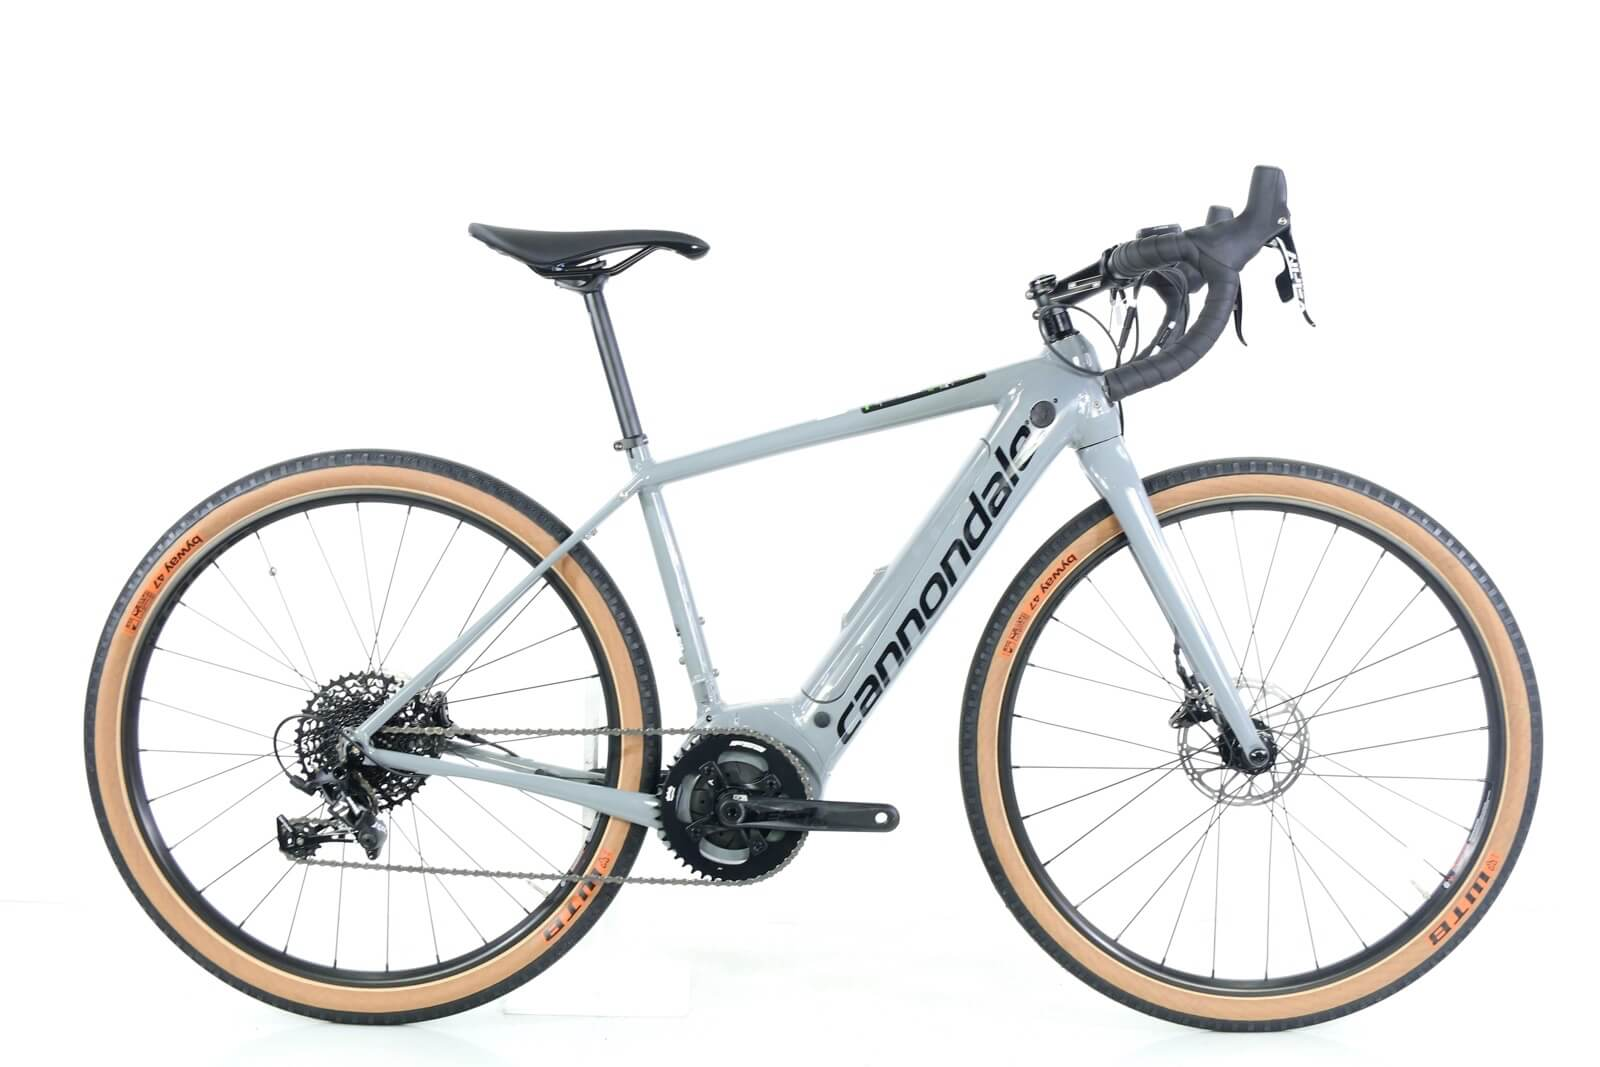 Cannondale Synapse NEO SE e-road bike